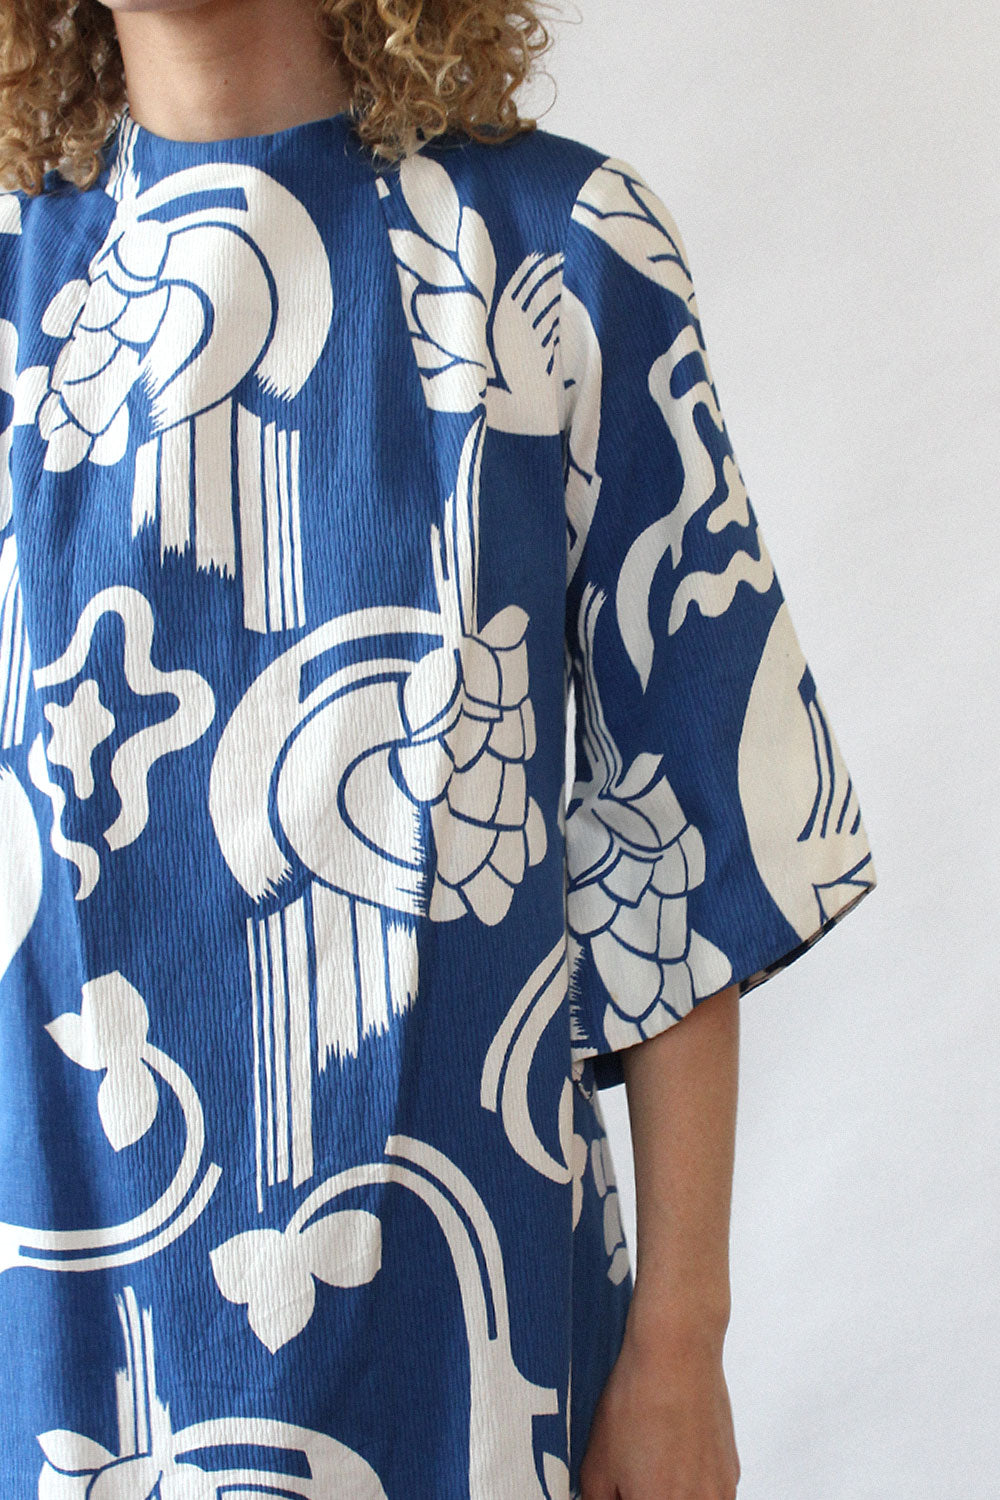 Graphic Floral Hawaii Dress XS-M